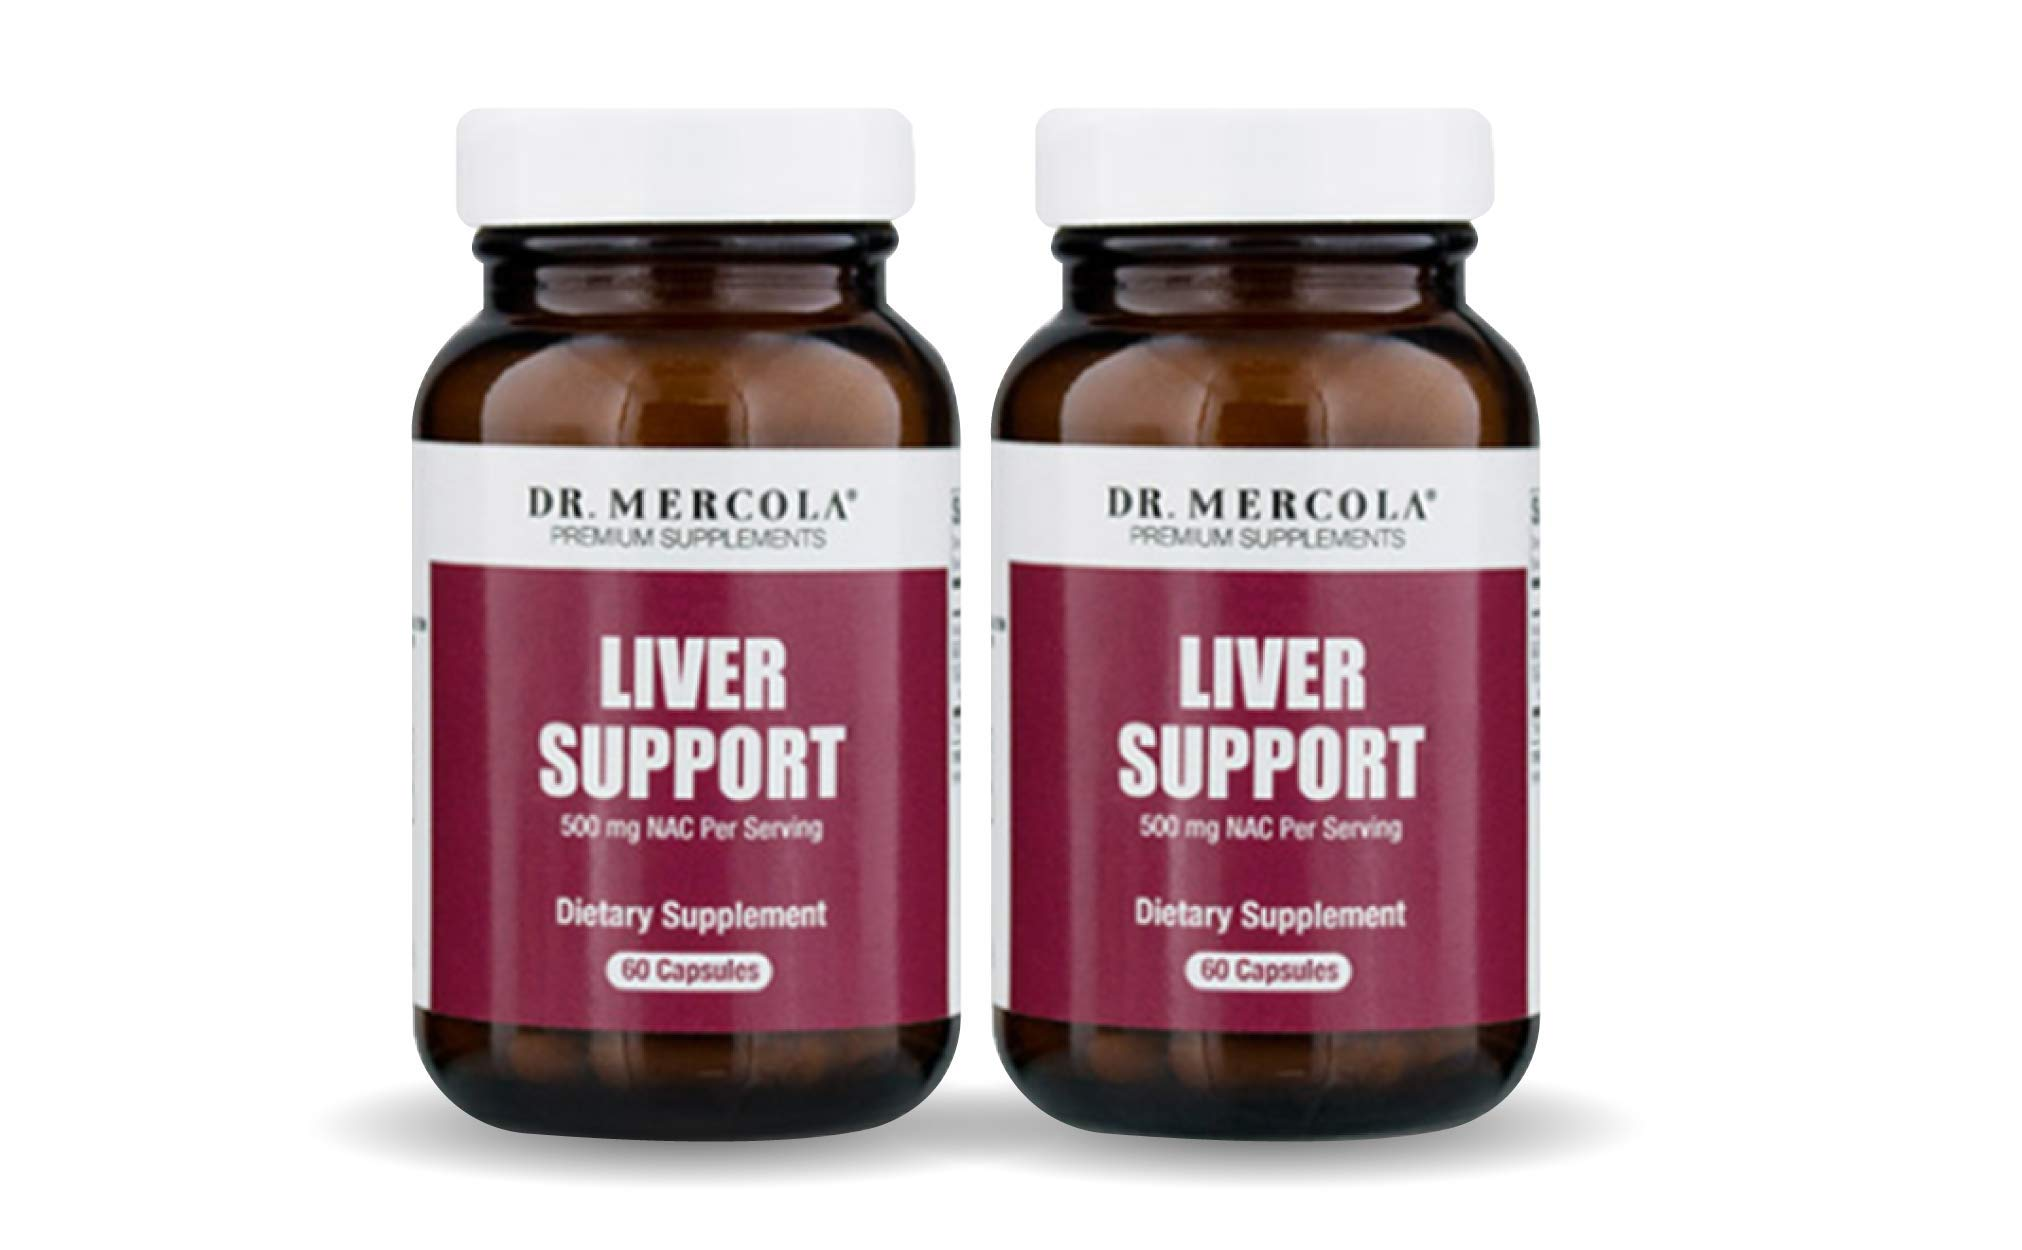 Dr. Mercola Liver Support Formula – 60 Capsules – 2 Bottles - Natural Liver Cleanse & Detox: N-Acetyl Cysteine, Milk Thistle & Organic Broccoli Powder – Supports Healthy Liver Function & Repair